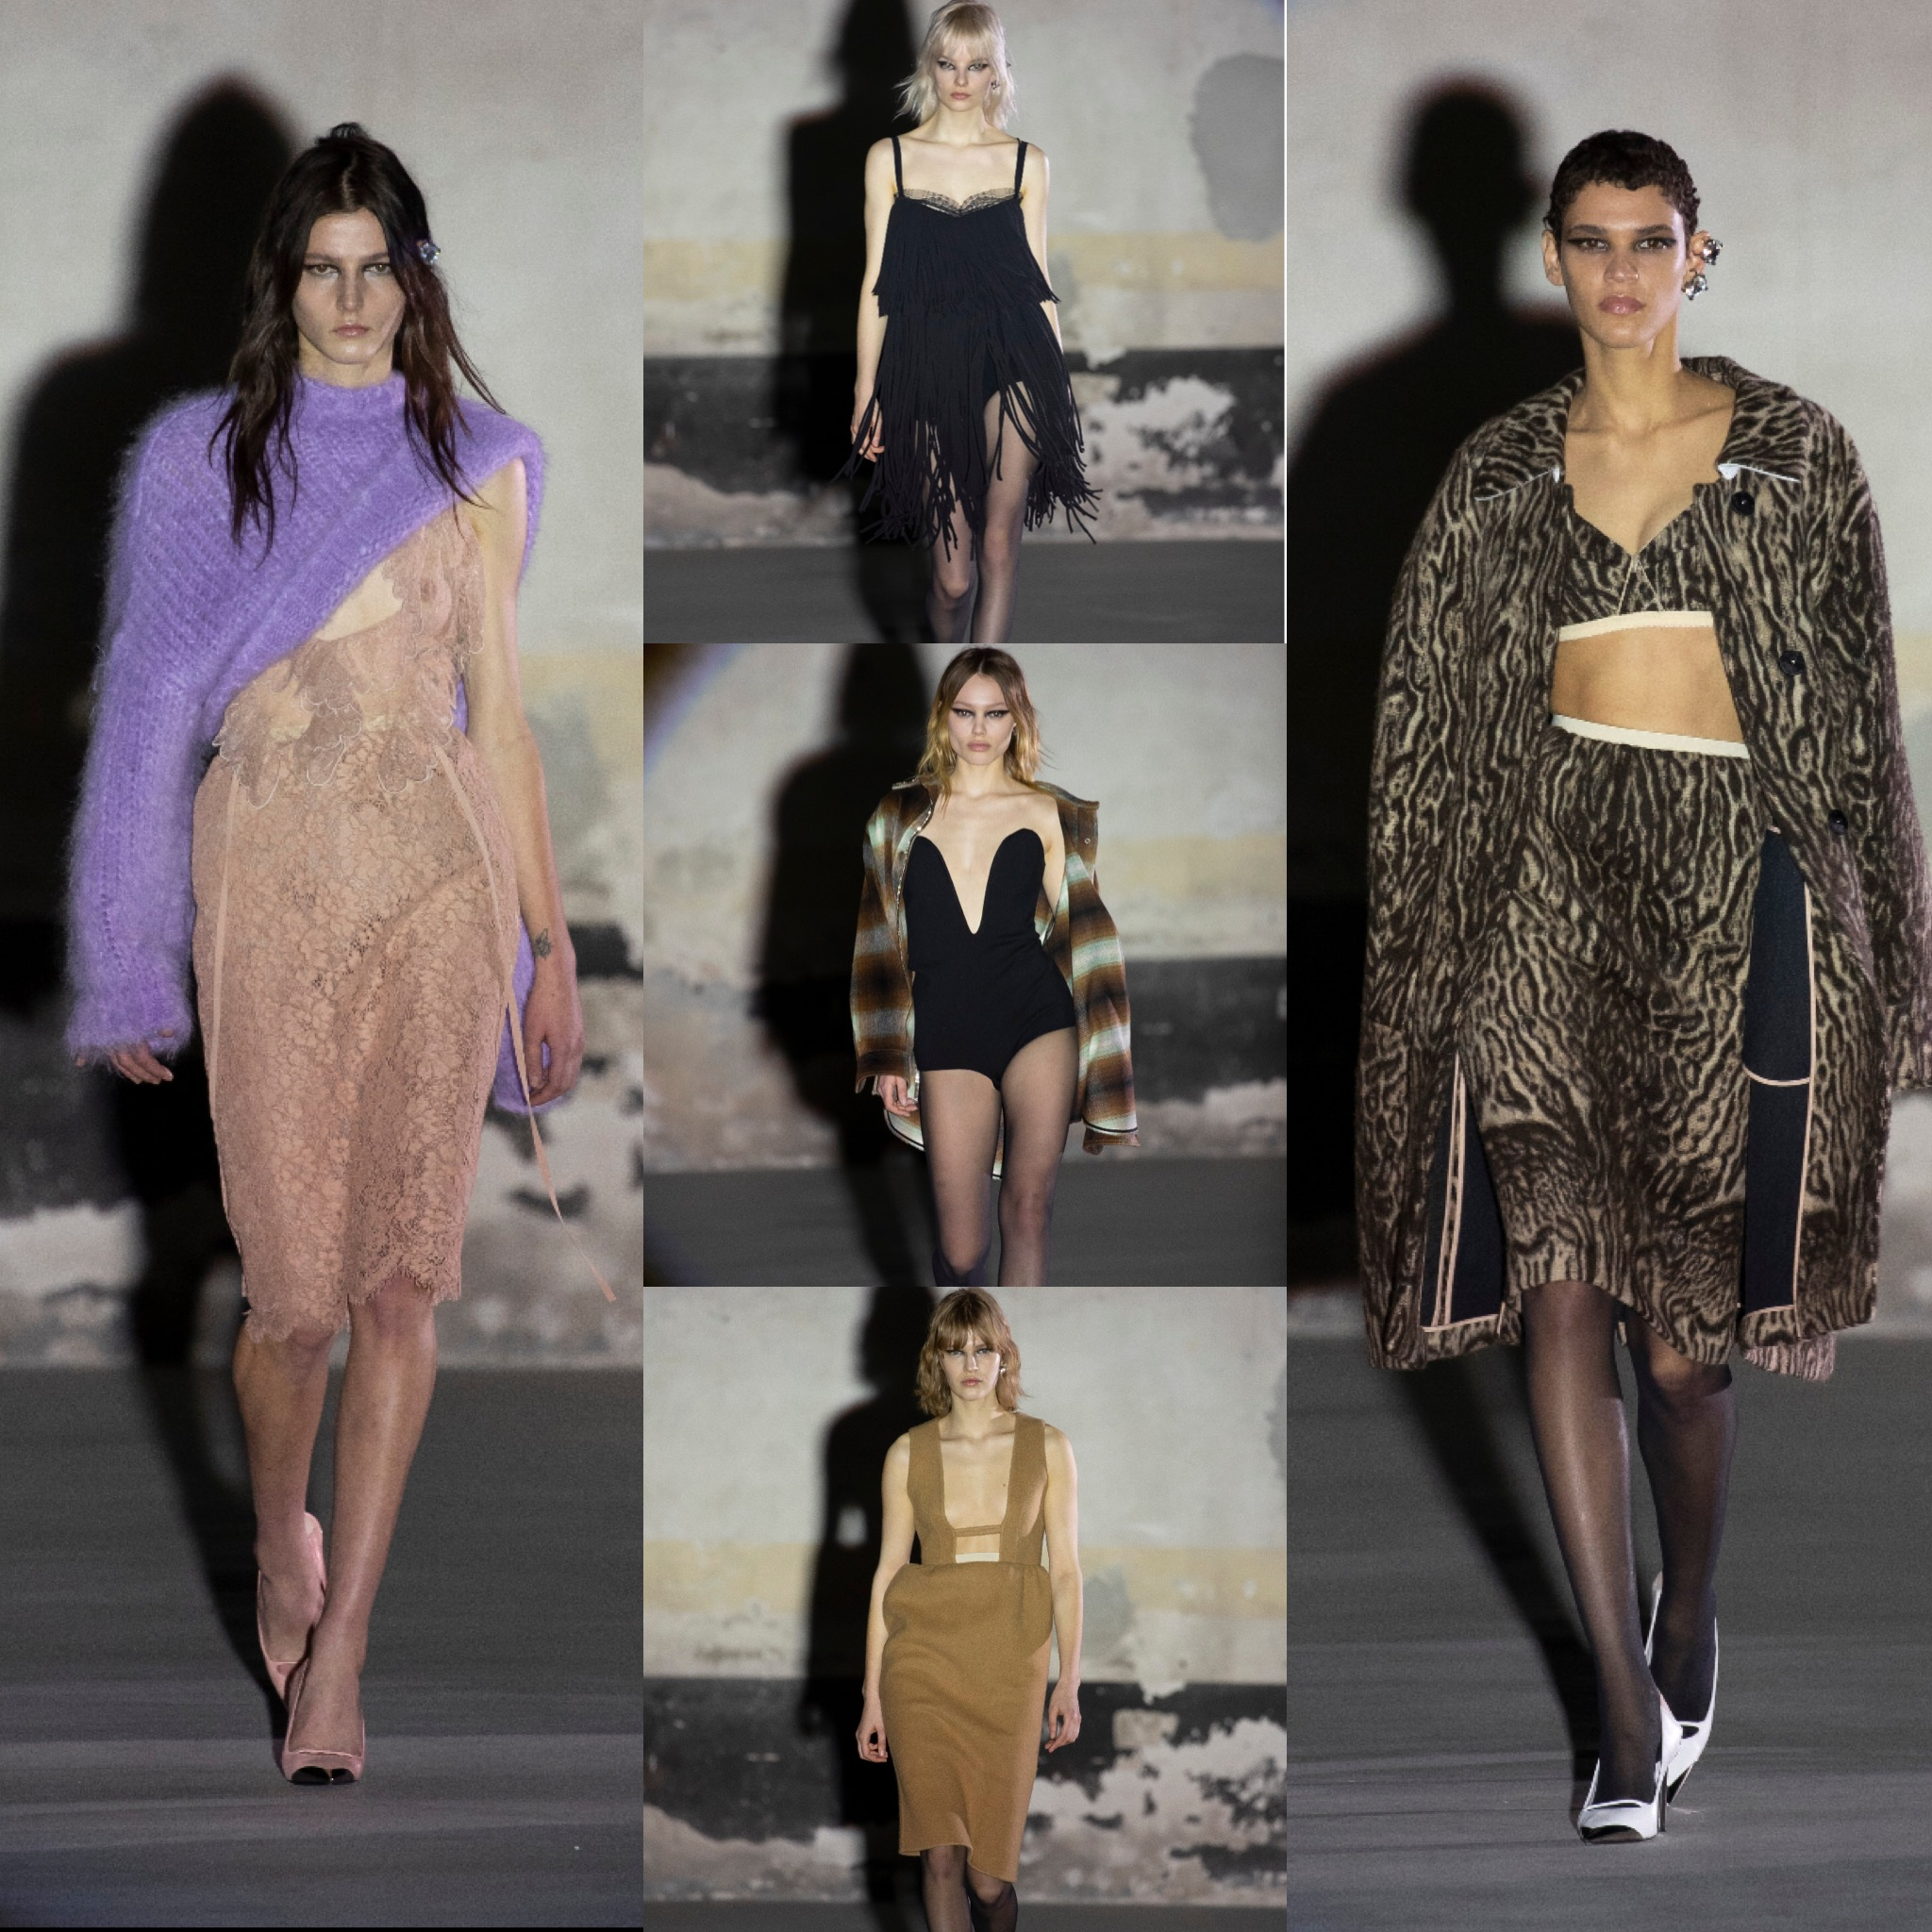 N21, chic and sensual collection